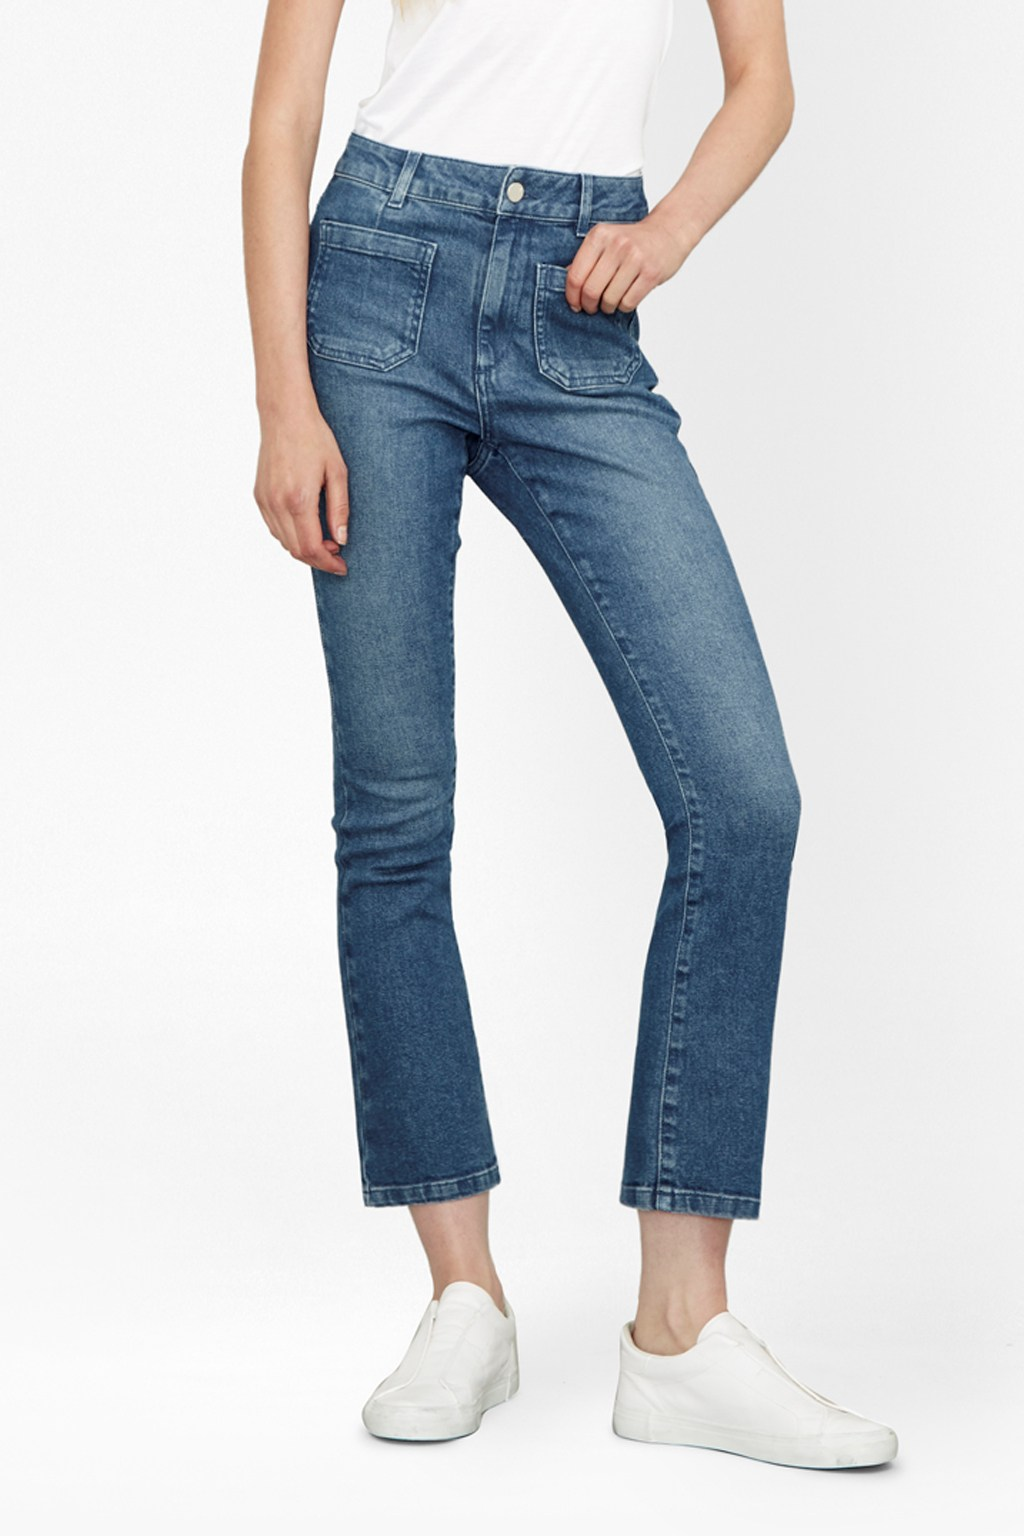 If you're tired of wearing skirts, dresses, and shorts and ready to get back into your jeans, here's how to do it—starting with a solid pair of kick flares. Catch up over the latest trendy.